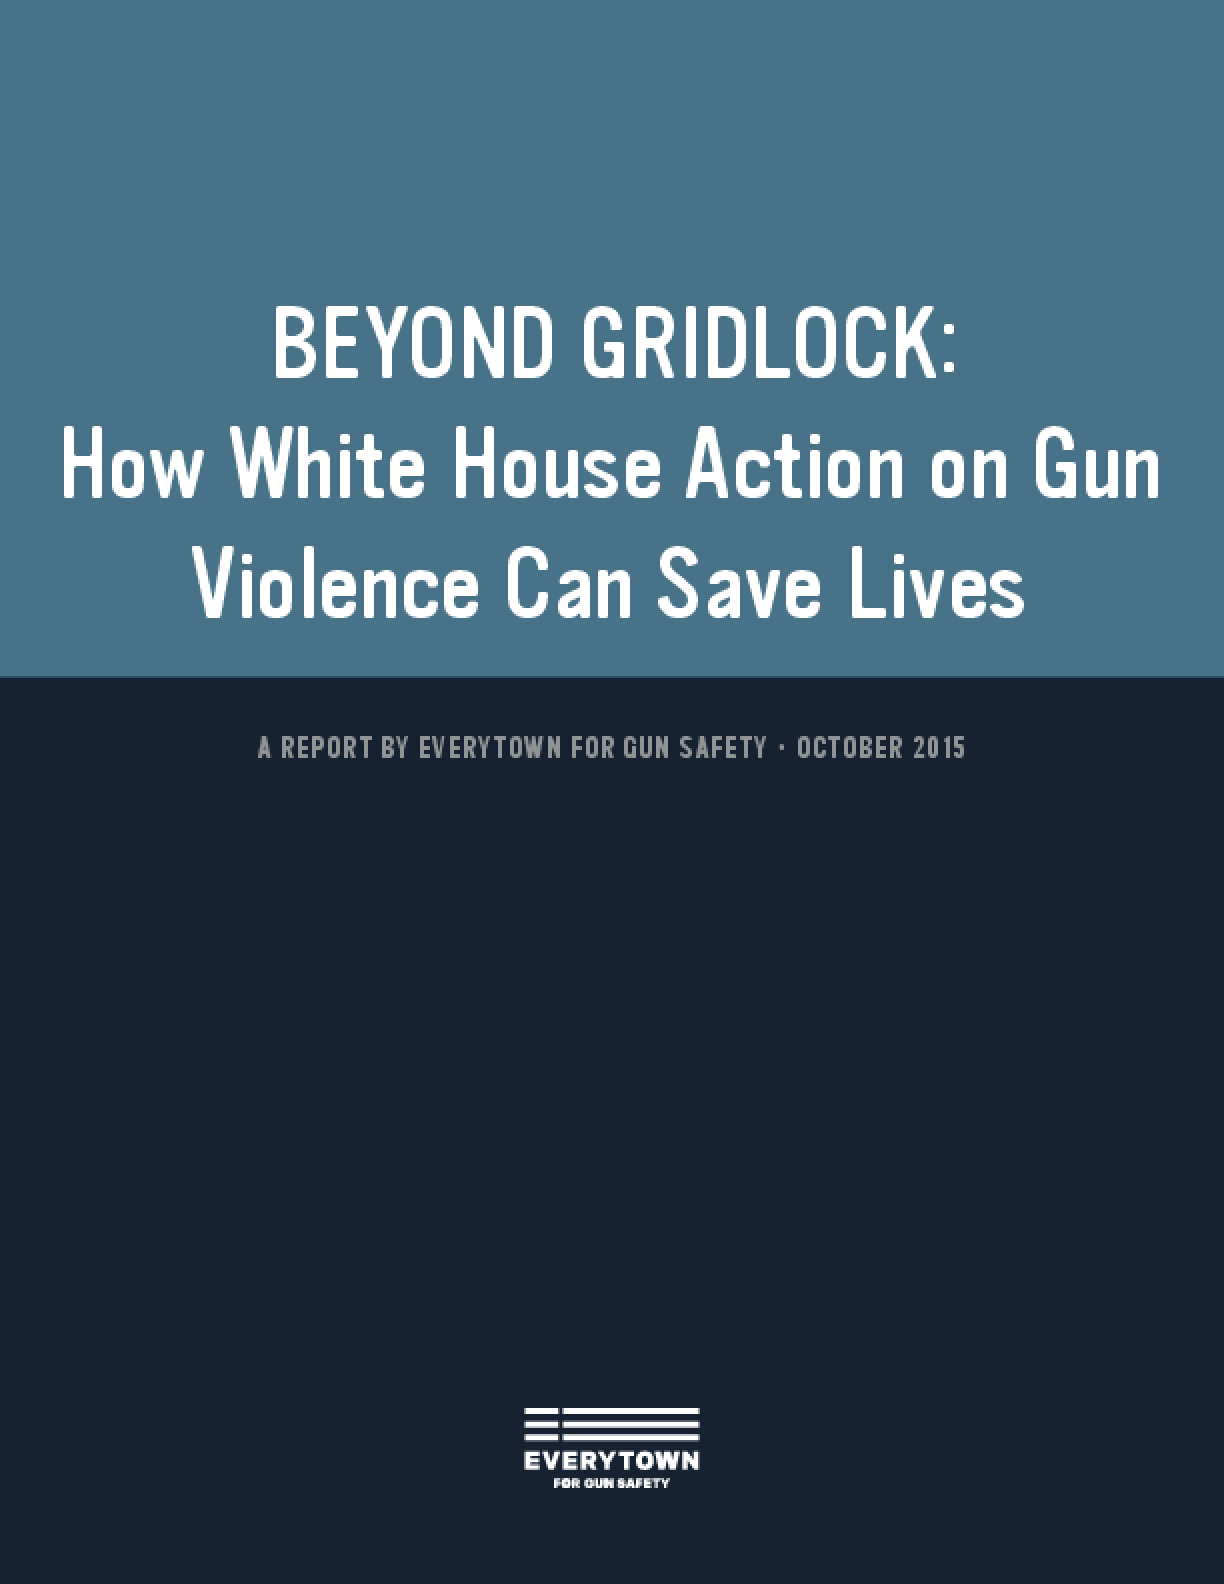 Beyond Gridlock: How White House Action on Gun Violence Can Save Lives